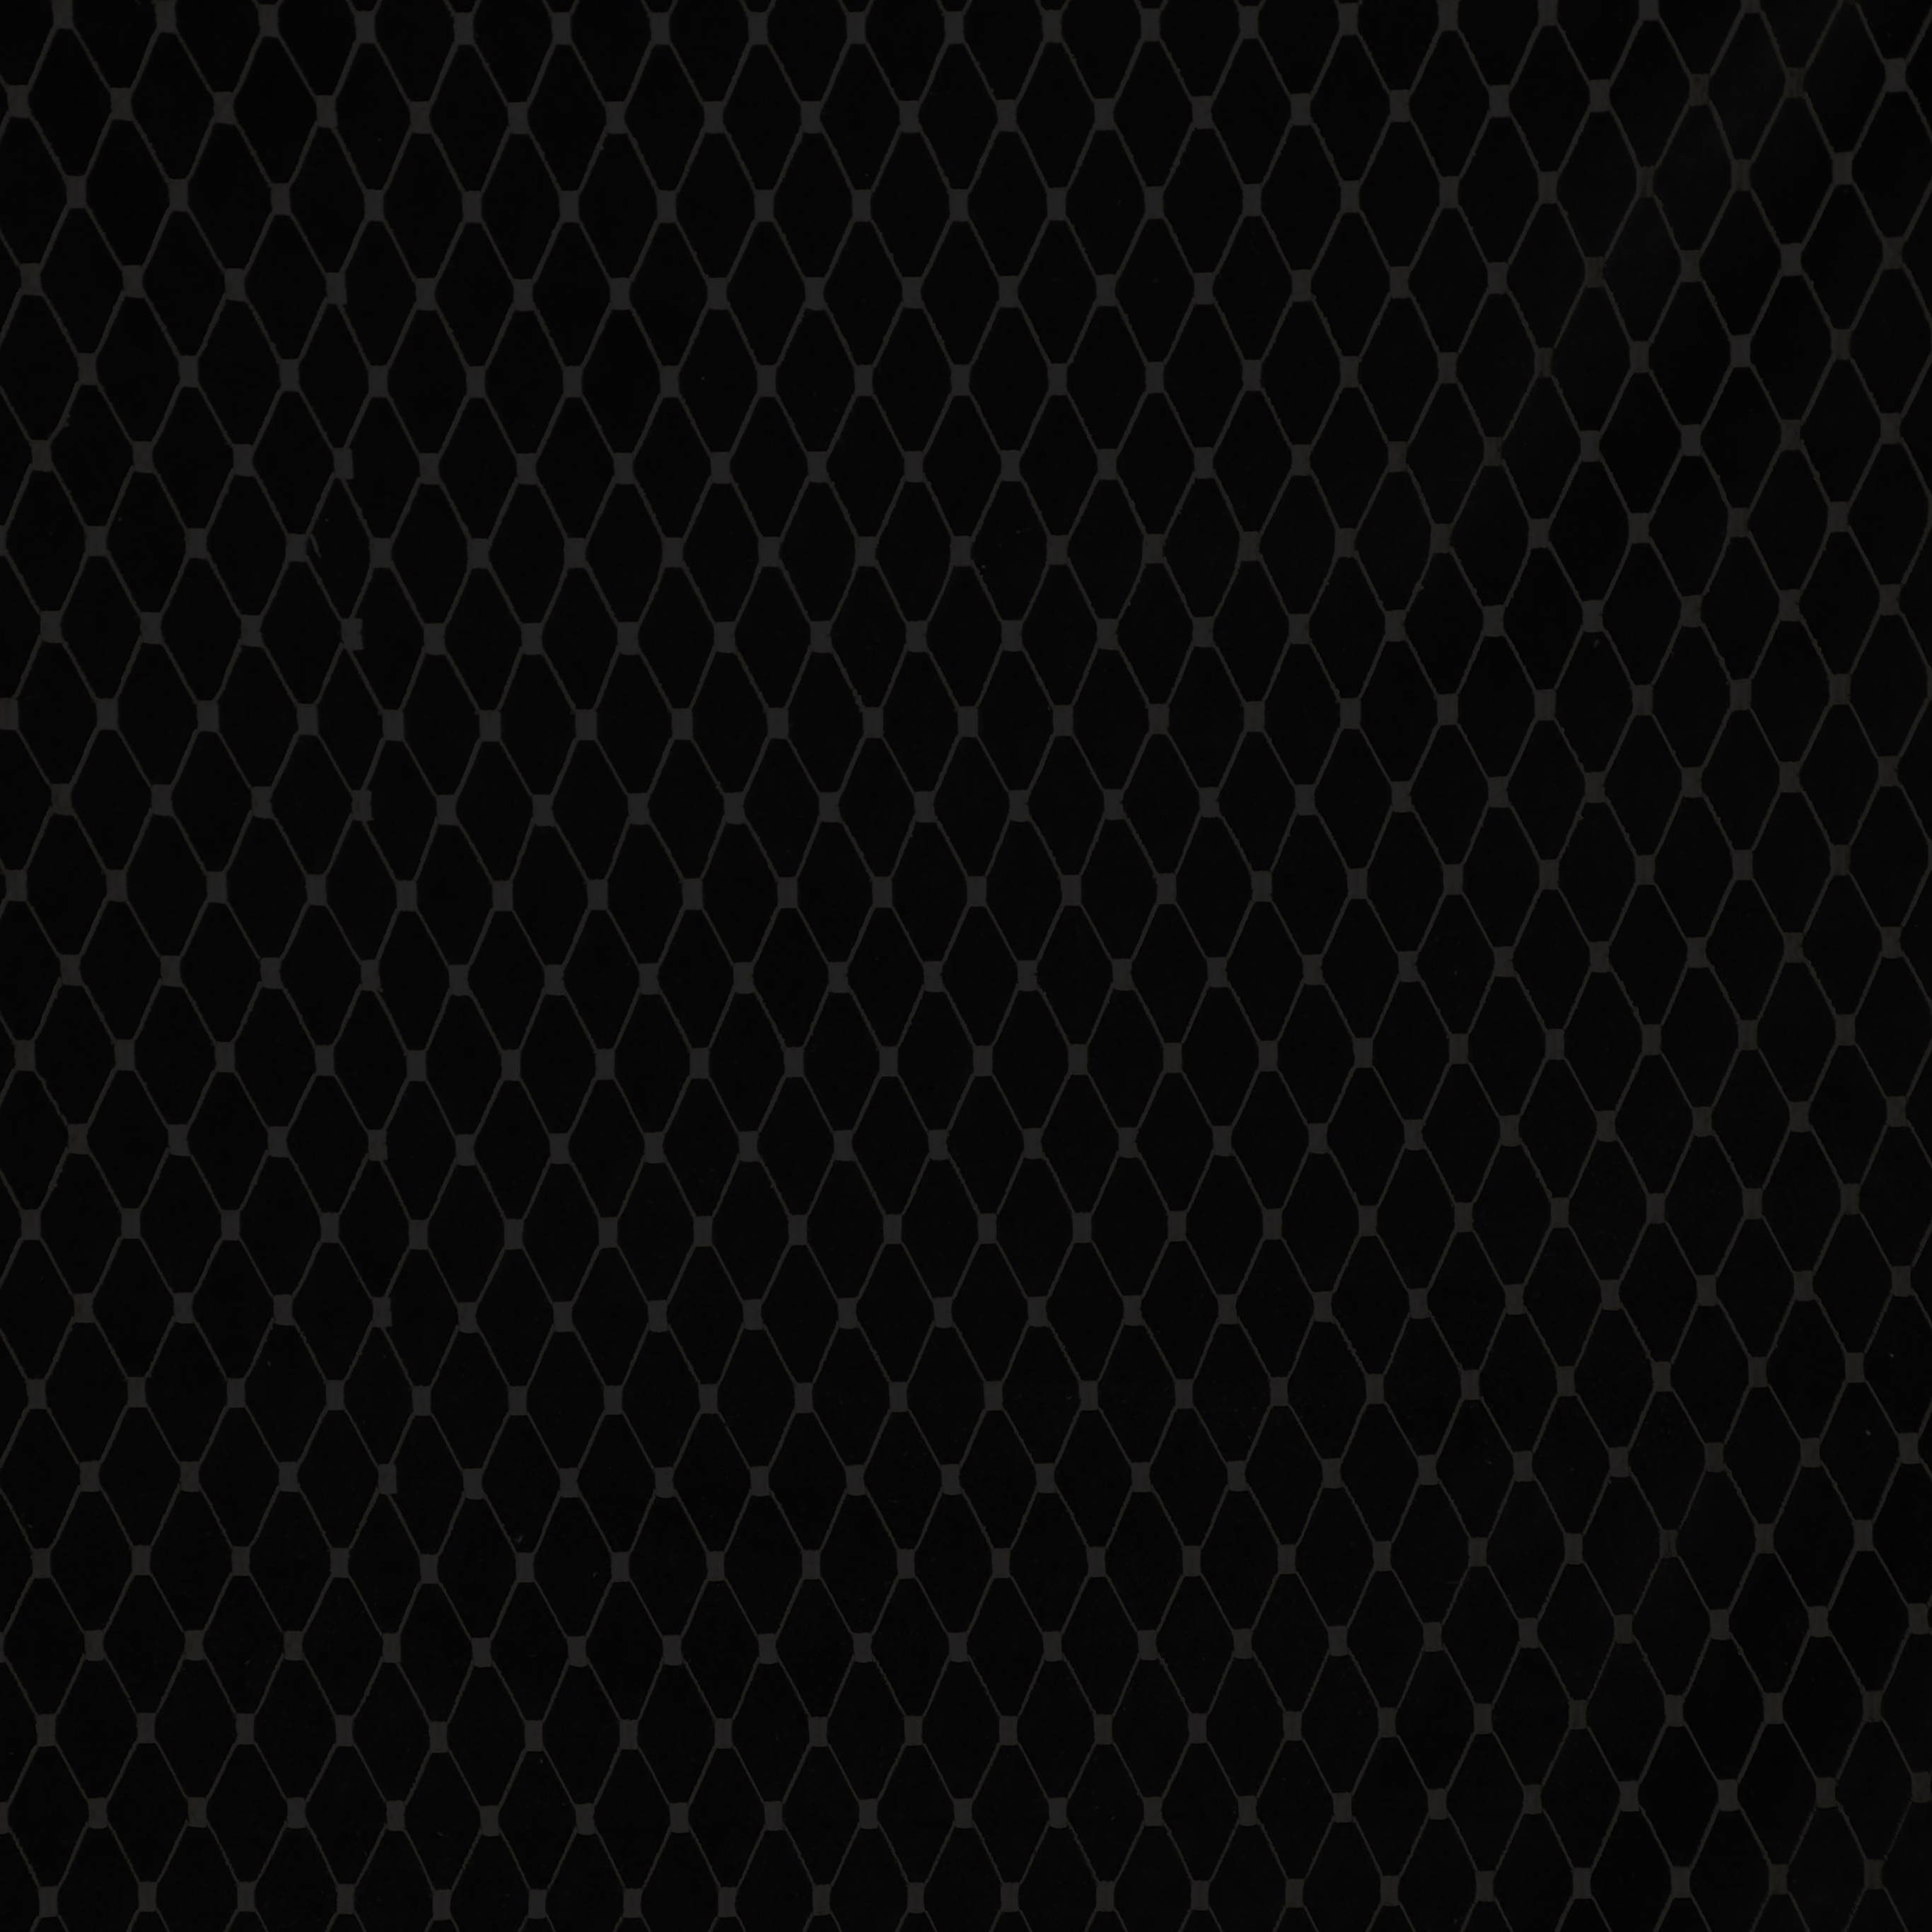 vb23 wallpaper bang goo dark pattern